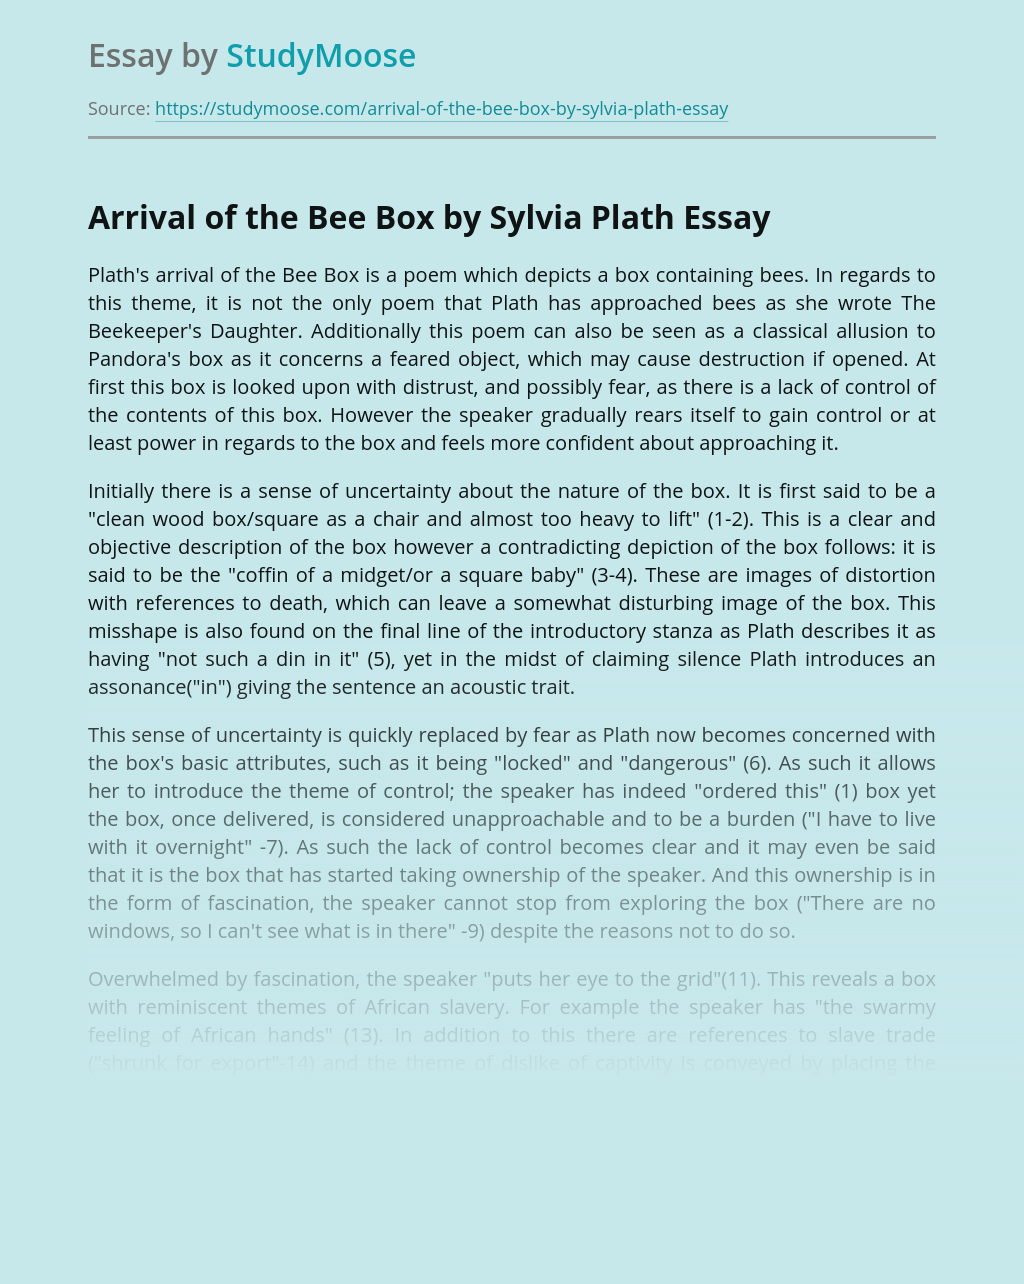 Symbolism in The Arrival of the Bee Box